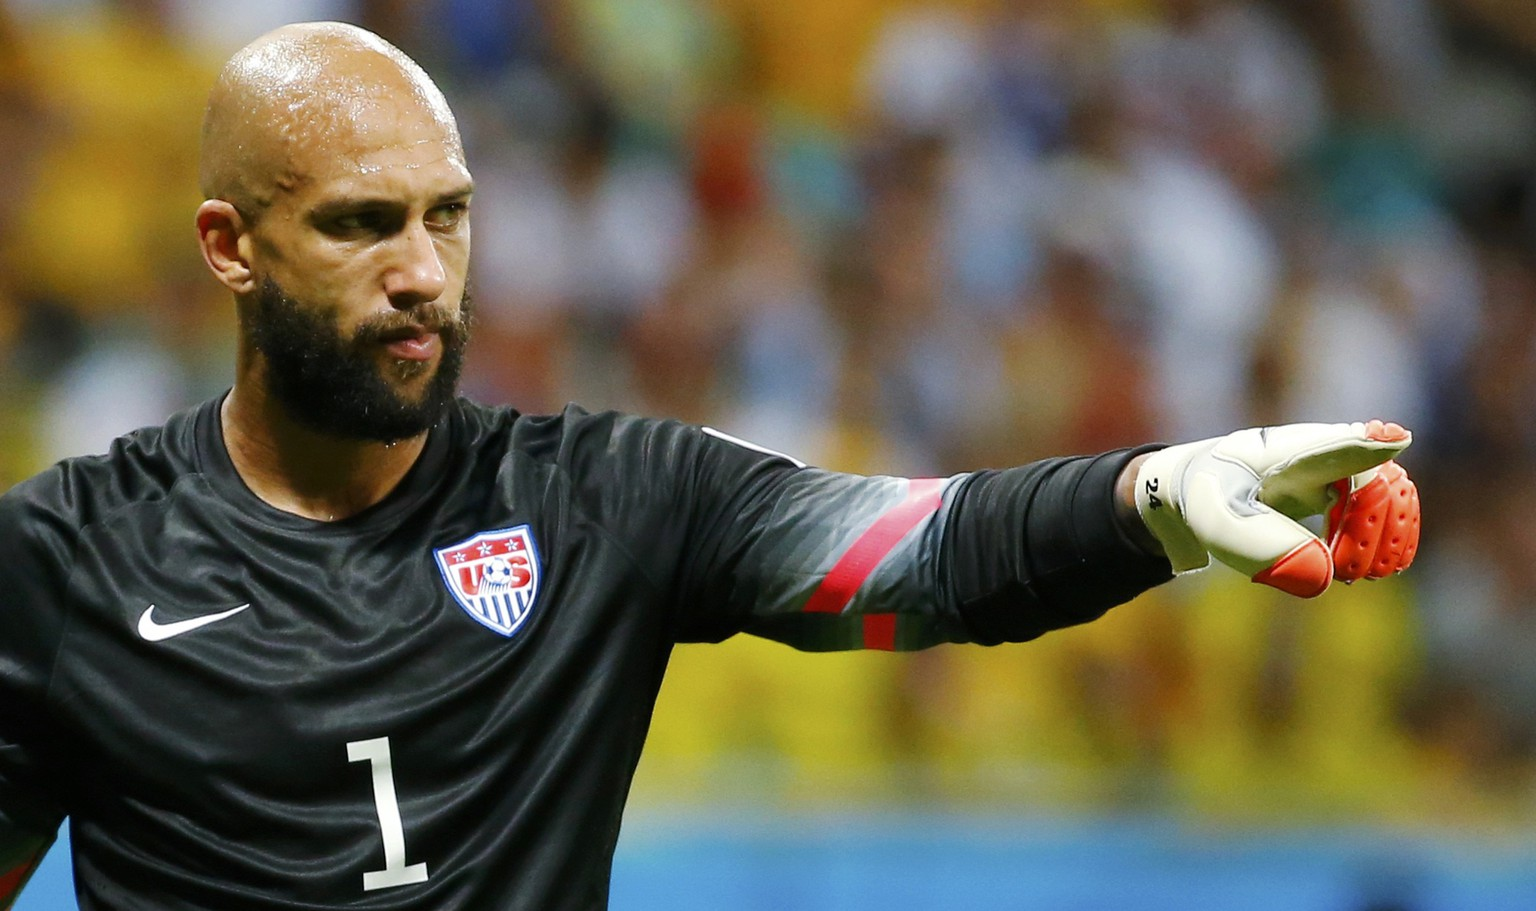 Goalkeeper Tim Howard of the U.S. gestures during their 2014 World Cup round of 16 game against Belgium at the Fonte Nova arena in Salvador July 1, 2014. REUTERS/Yves Herman (BRAZIL  - Tags: SOCCER SPORT WORLD CUP)